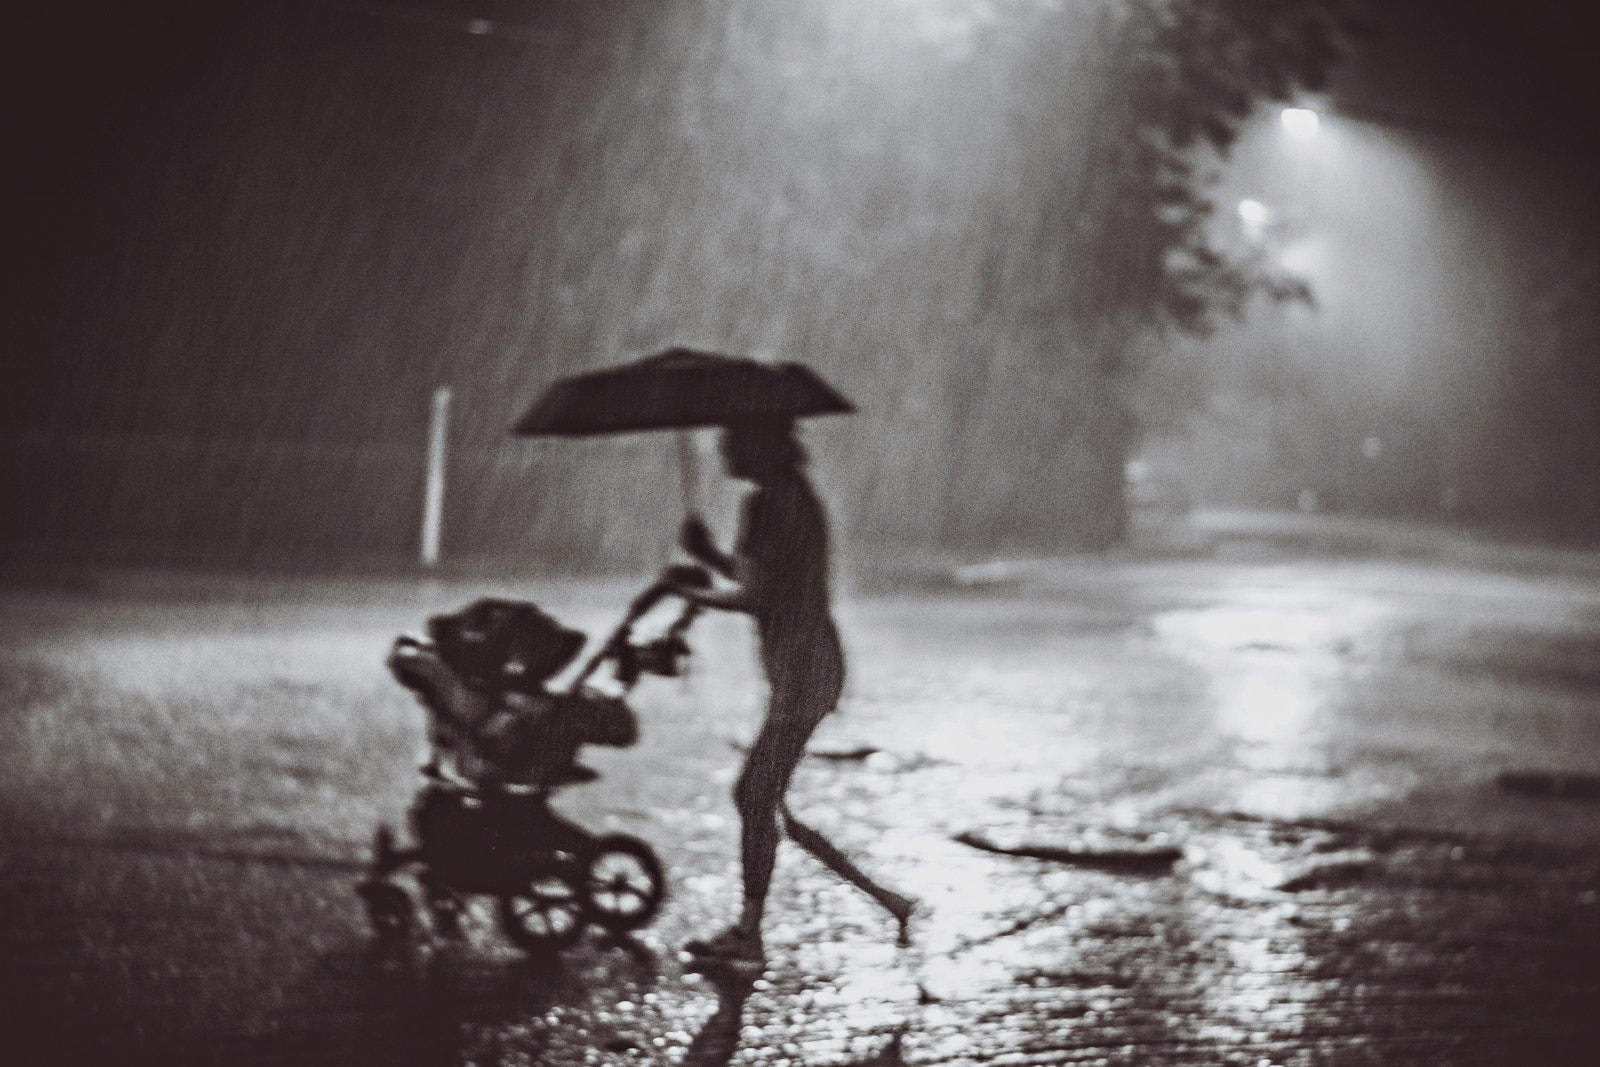 Photograph A stroll in the rain by Ashton Pal on 500px